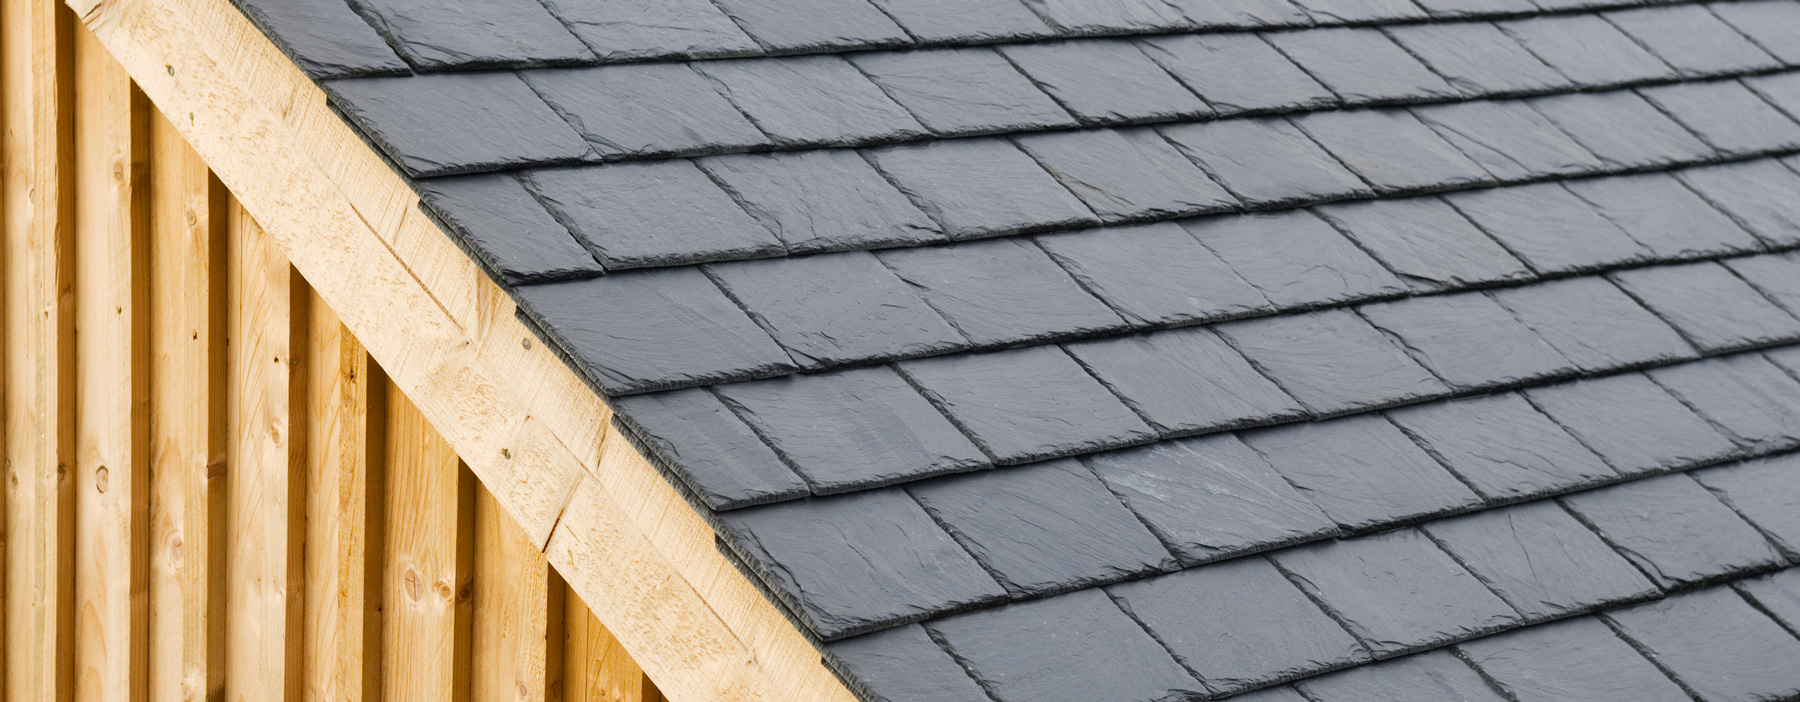 Slate Roofing Roof Worx